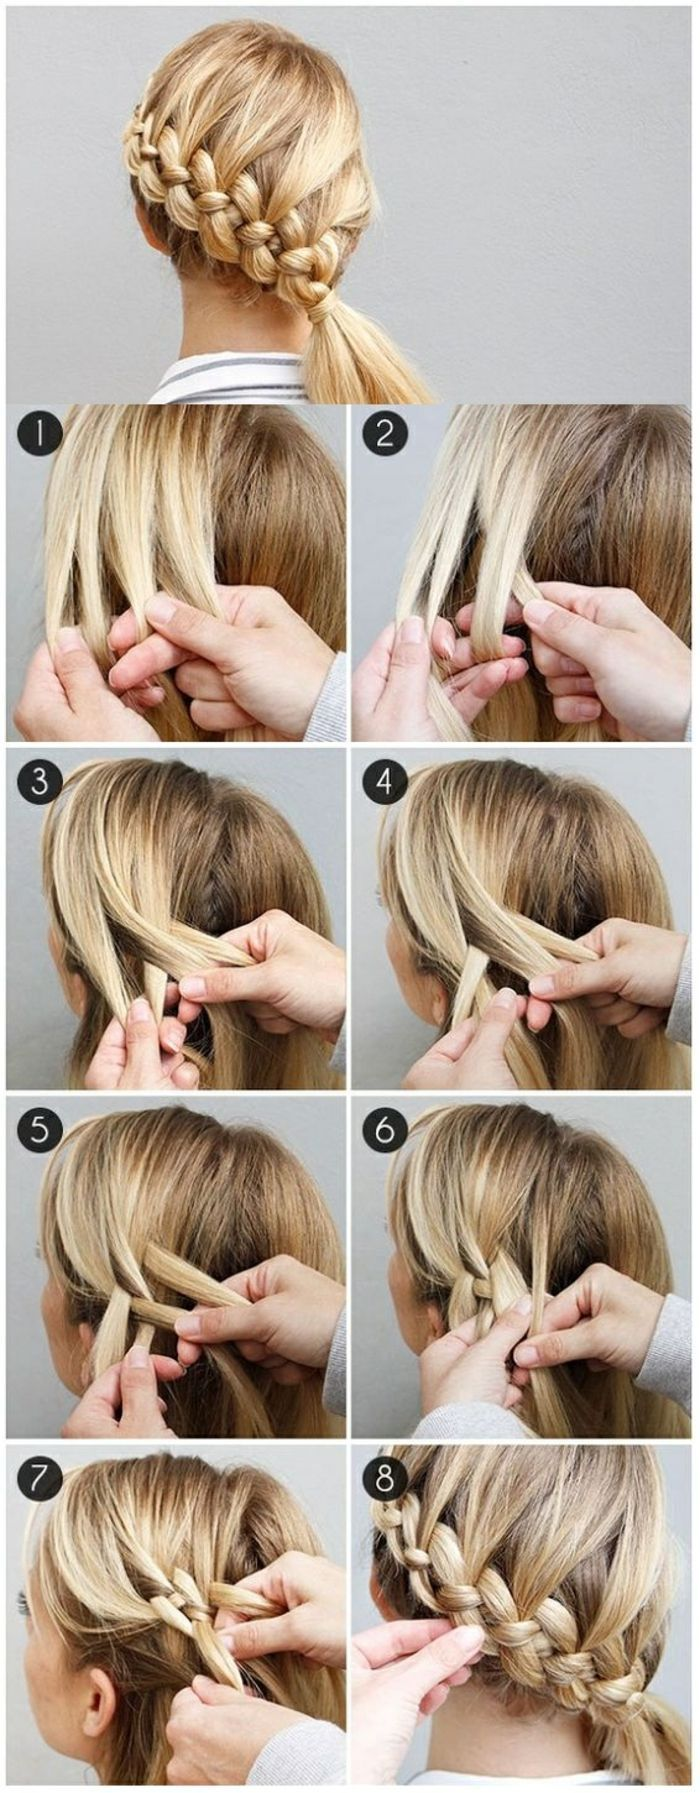 ▷ Over 1001 ideas and instructions on how to make braided hairstyles yourself …   – frisuren